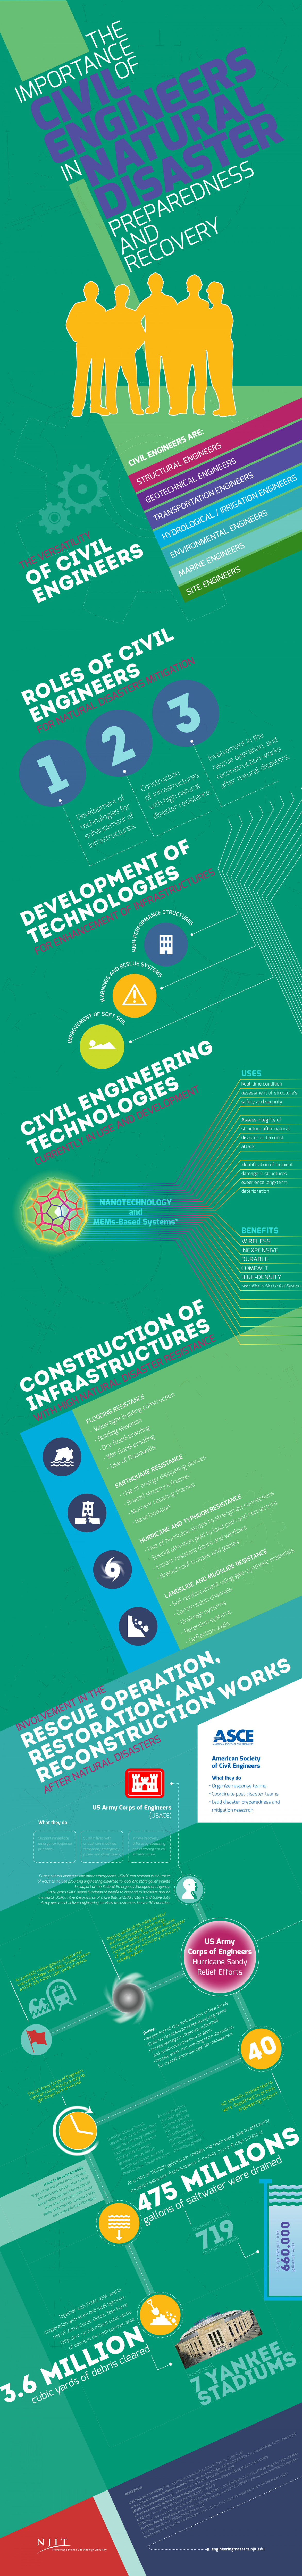 The Importance of Civil Engineering in Natural Disaster Preparedness and Recovery Infographic